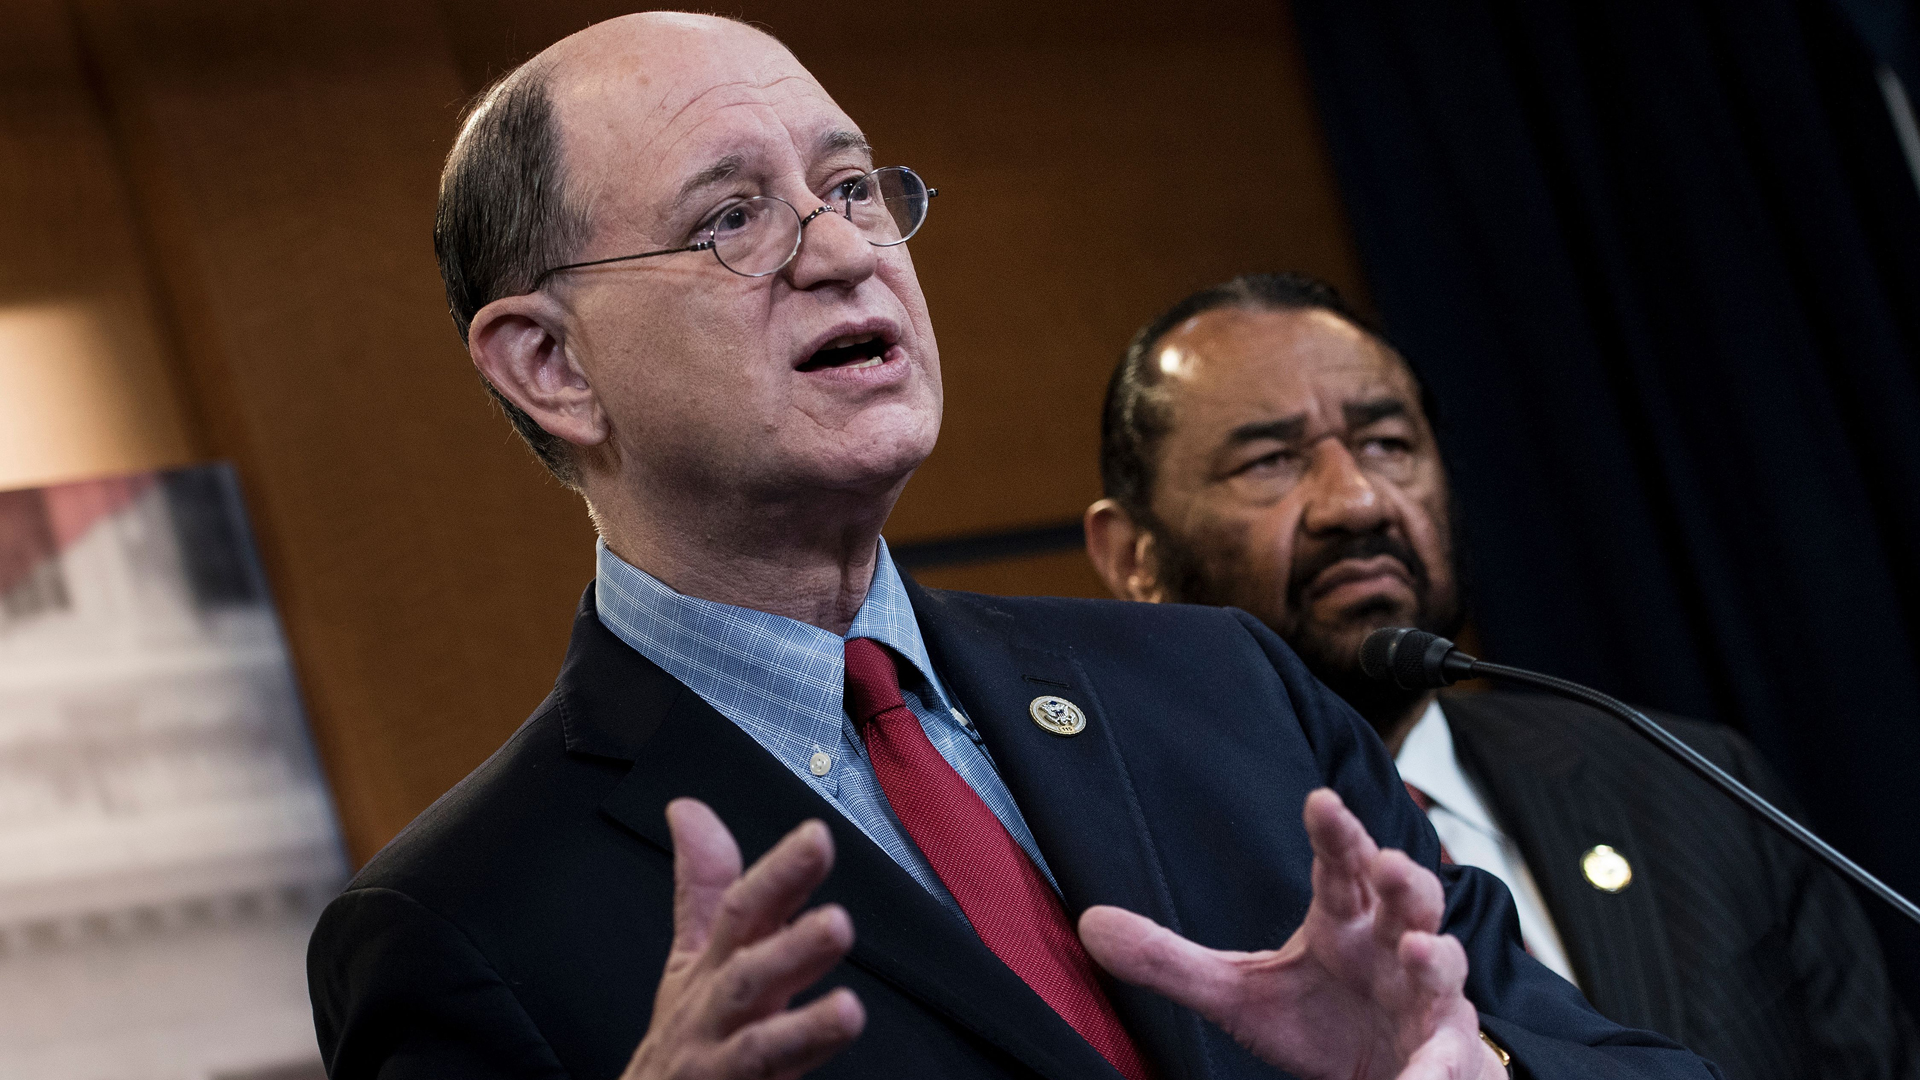 U.S. Representative Brad Sherman, left, Democrat of California, and U.S. Representative Al Green, Democrat of Texas, take questions about articles of impeachment for U.S. President Donald Trump during a press conference on Capitol Hill June 7, 2017. (Credit: Brendan Smialowski / AFP / Getty Images)